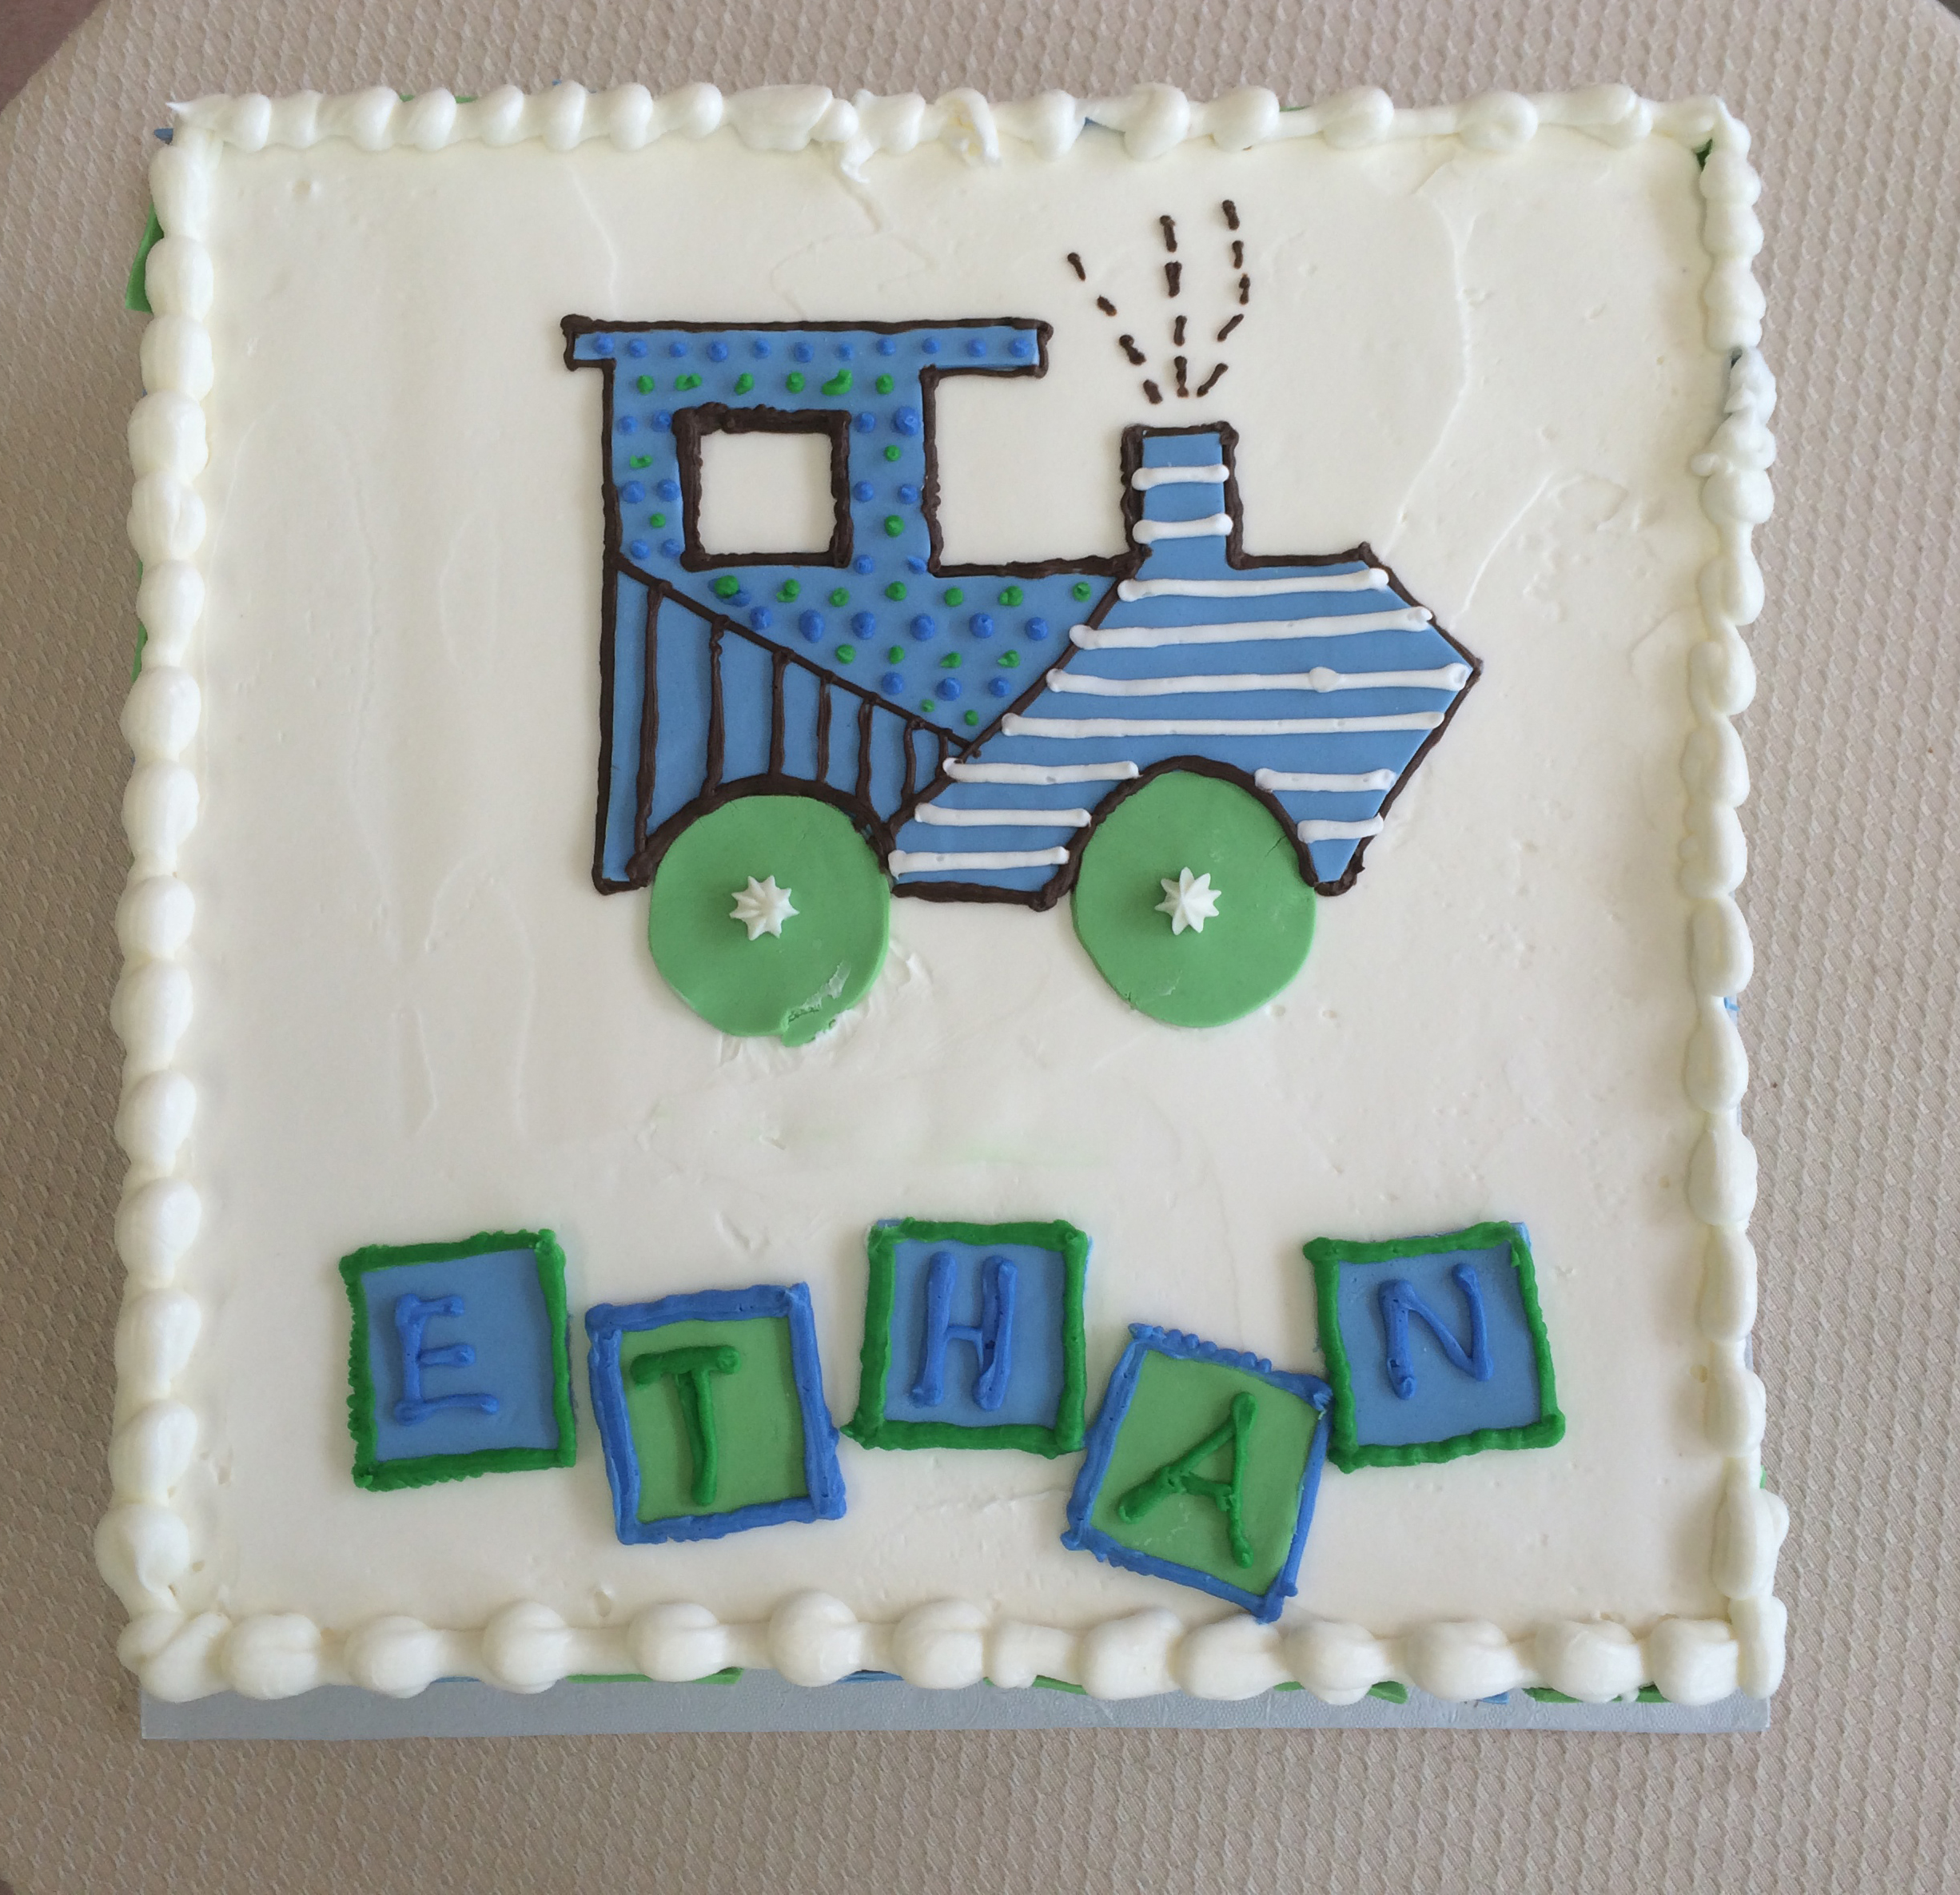 Rolled Fondant Train & Block Cut-Outs